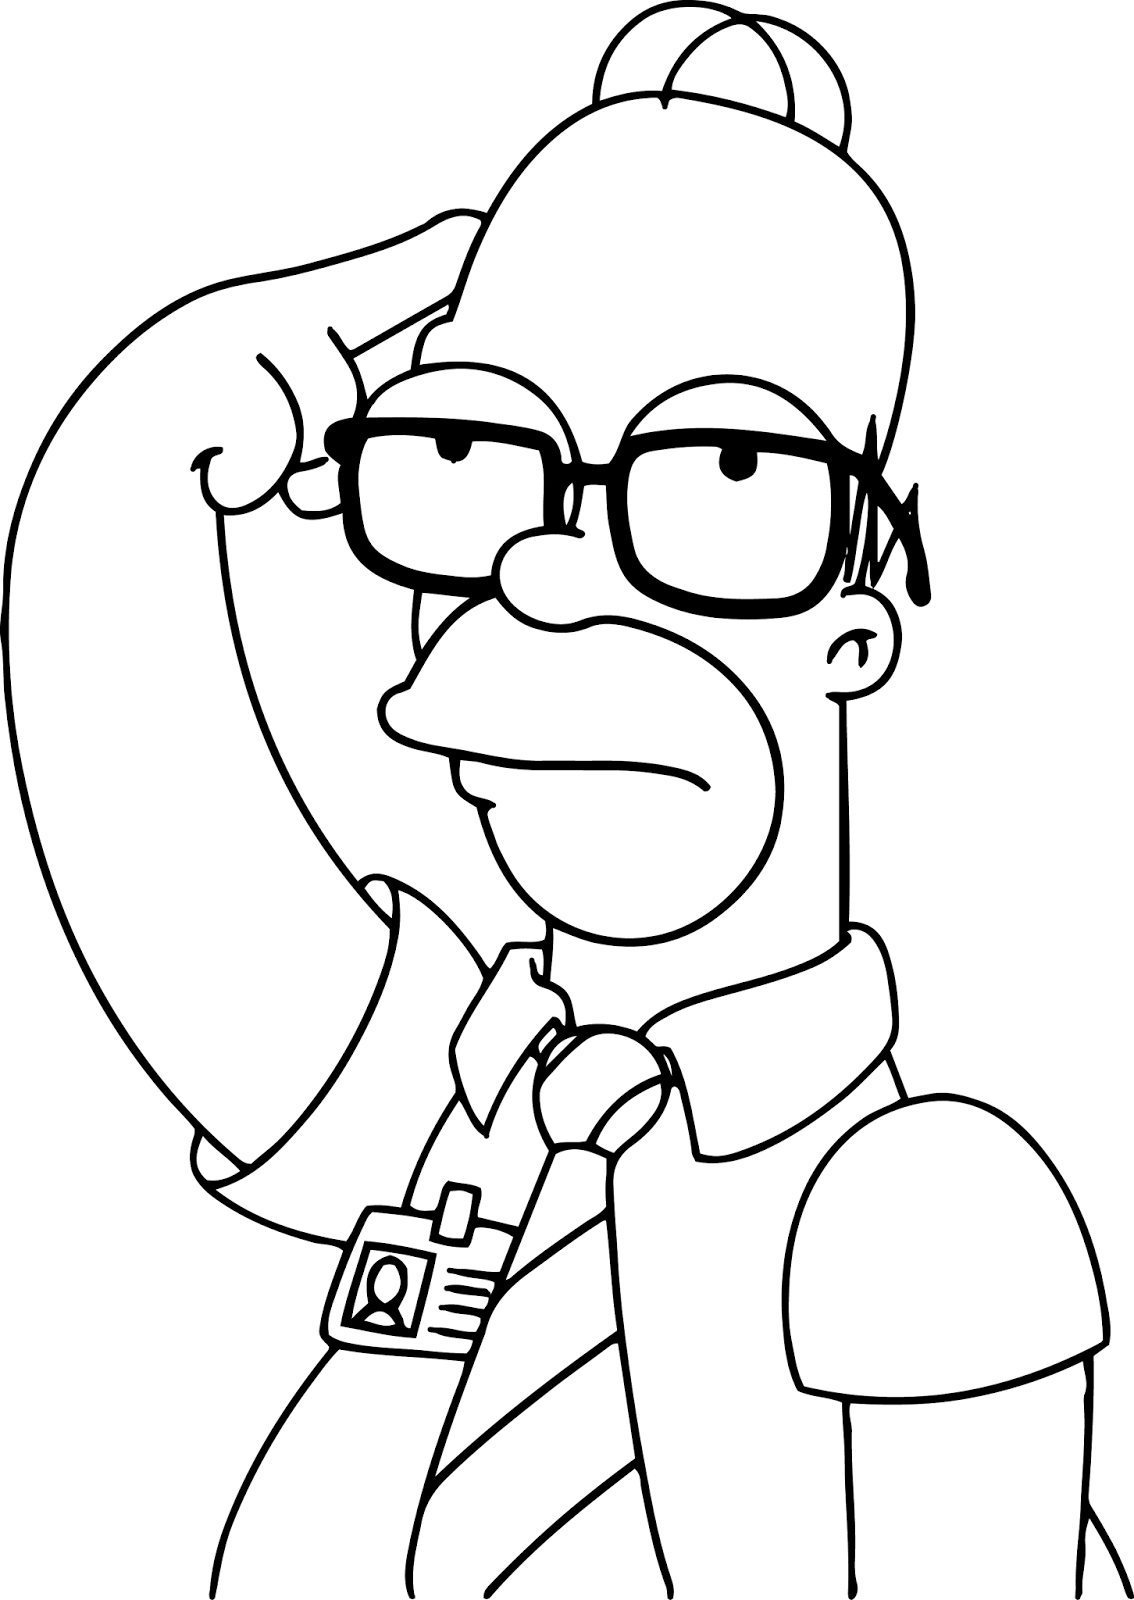 Dibujos De Los Simpson Para Colorear further Car Drawings In Pencil Wallpapers 41 Wallpapers furthermore xmple likewise 47488 further Wallpaper For April. on hd walpaper